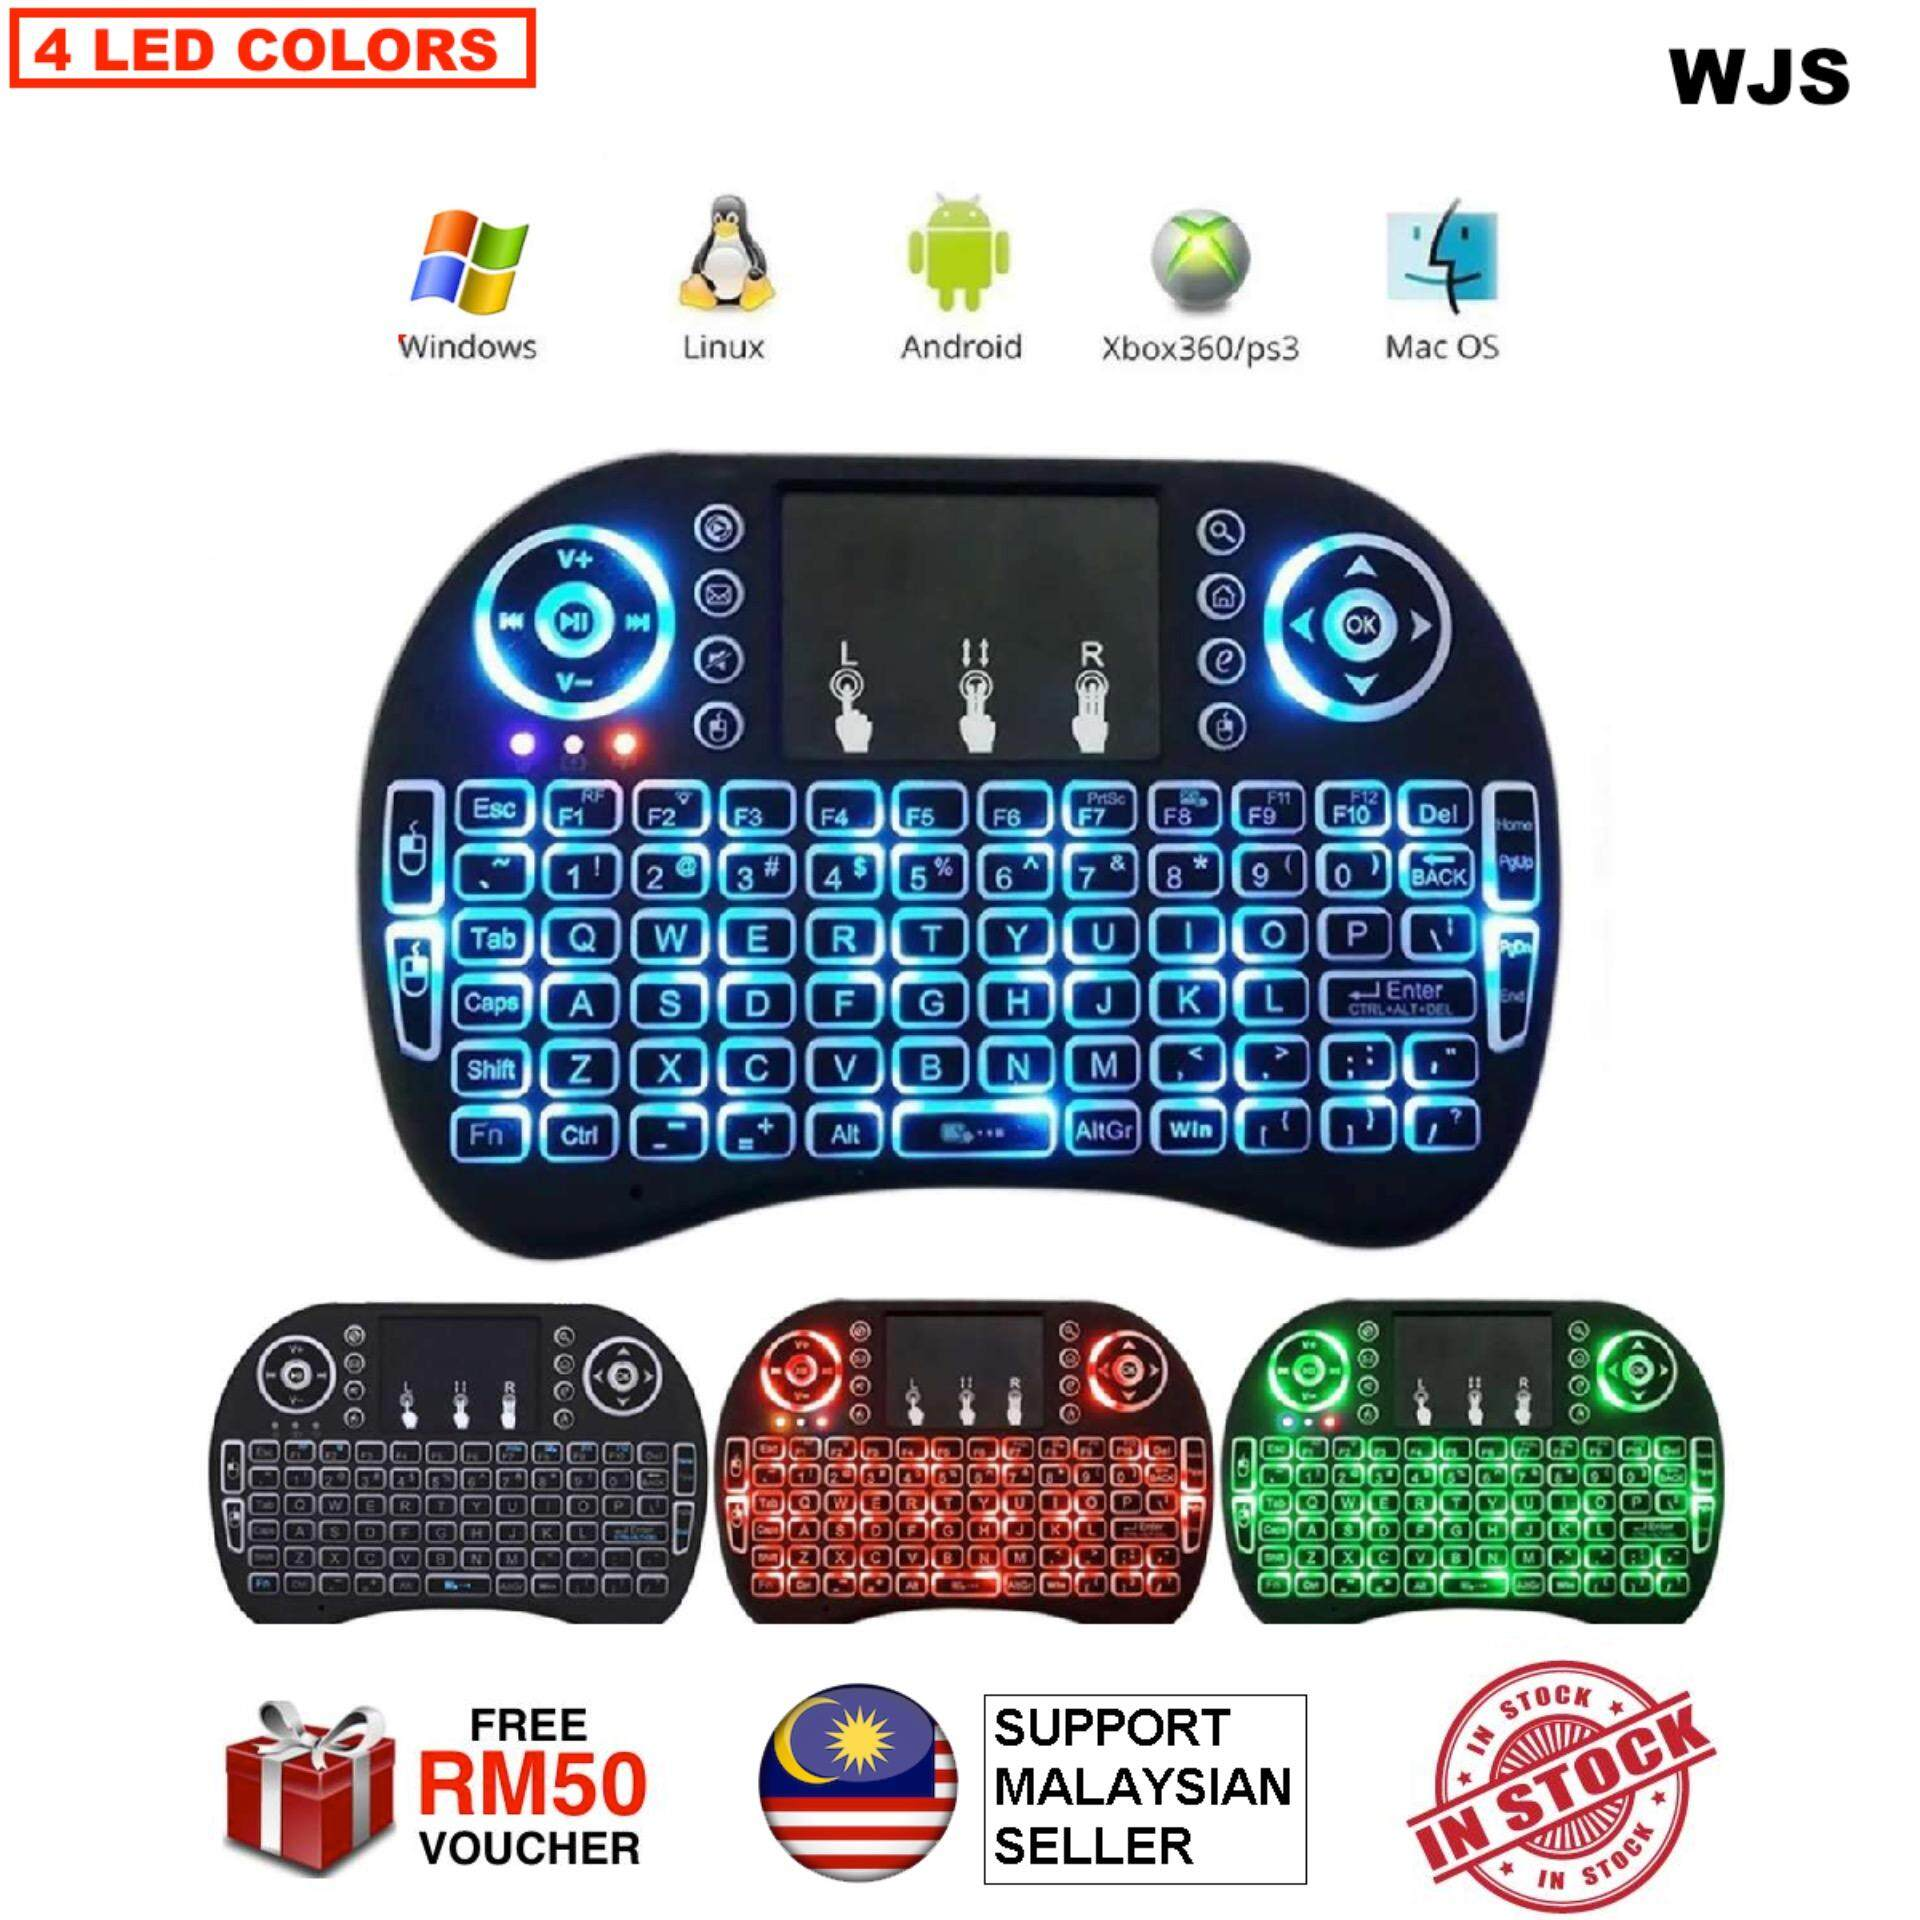 (FREE KEYBOARD BATTERY) WJS I8 Mini 2.4Ghz Wireless Touchpad Keyboard With Mouse For Pc